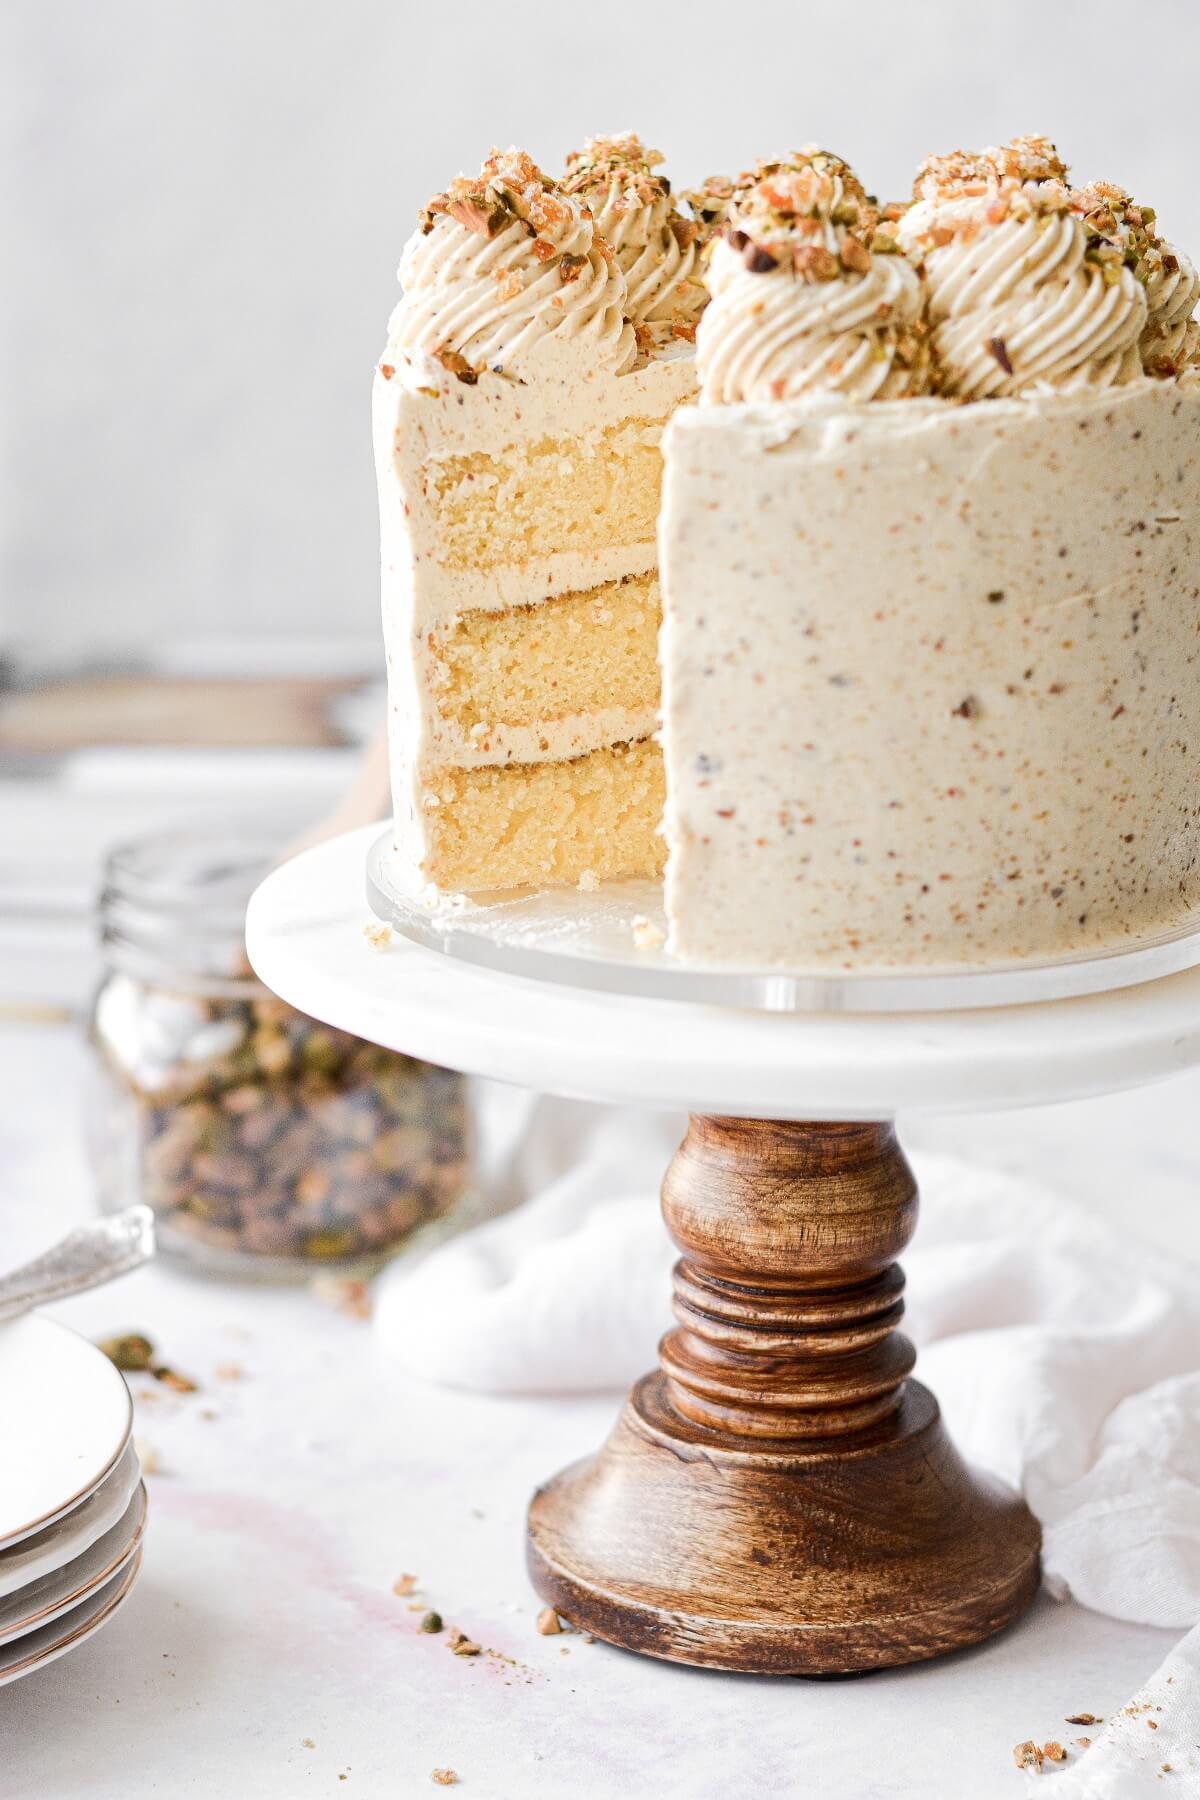 An orange pistachio layer cake, with one slice cut.